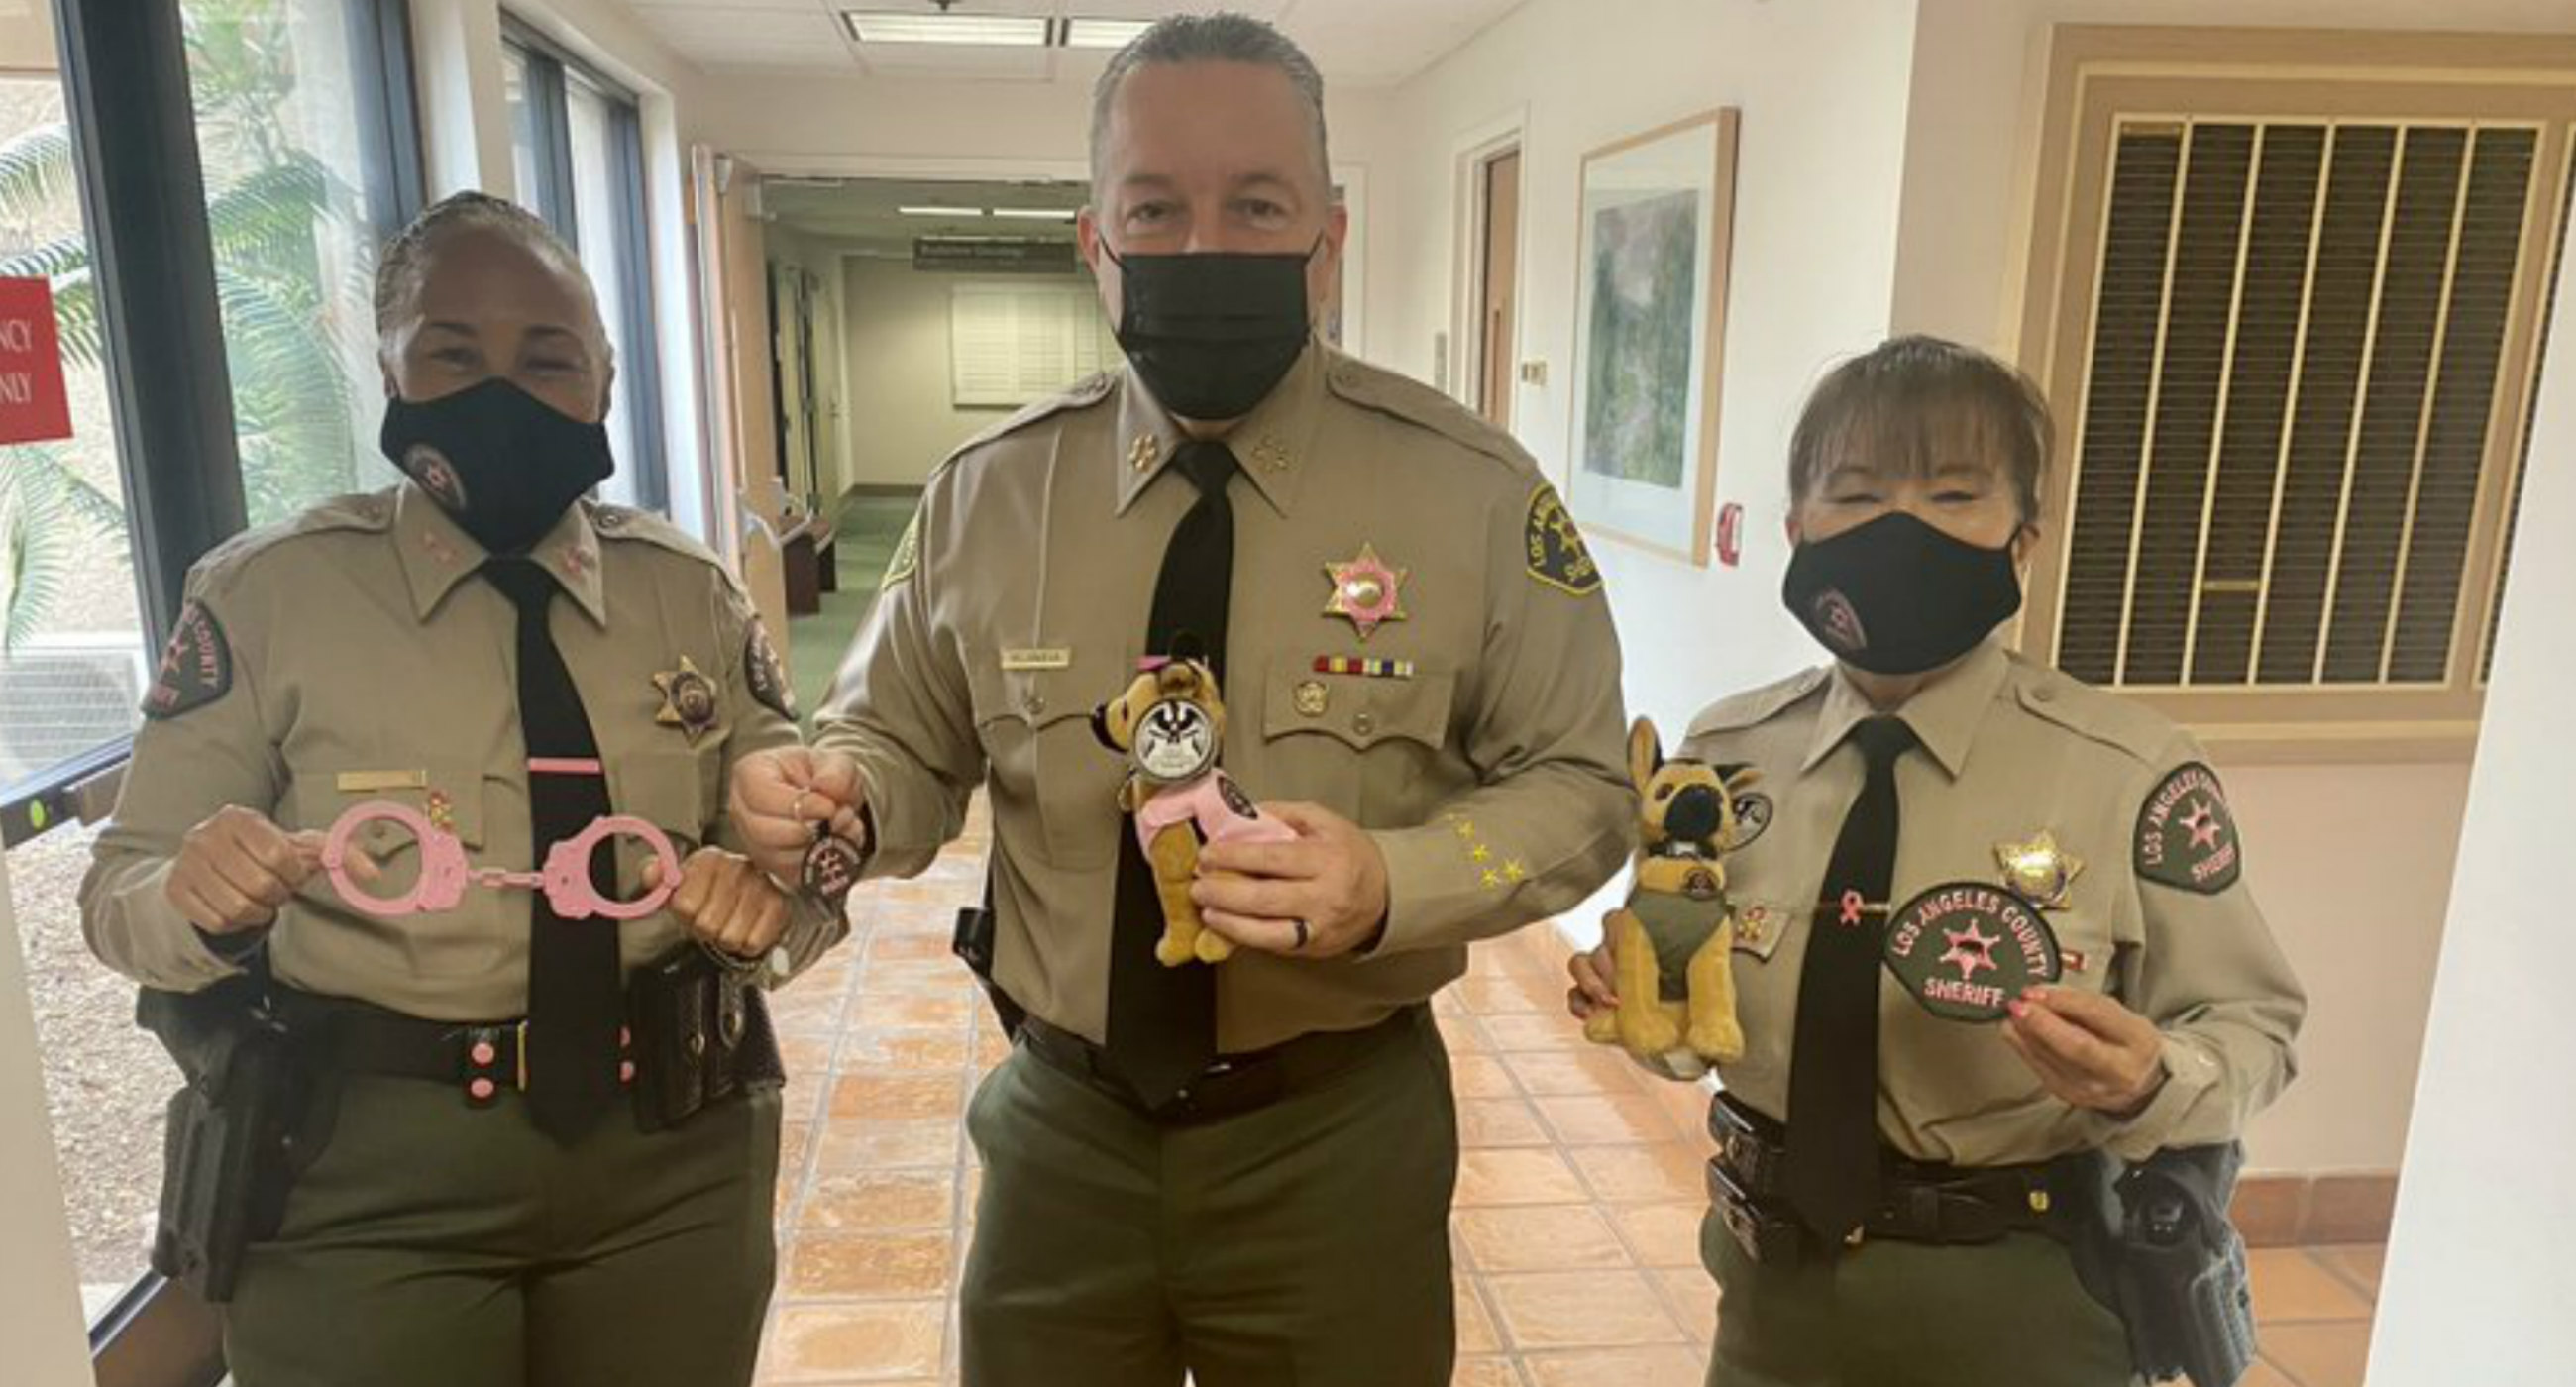 L.A. County Sheriff Alex Villanueva, a Latinx man in a brown uniform, poses alongside two women officers in brown uniforms as they all hold pink handcuffs